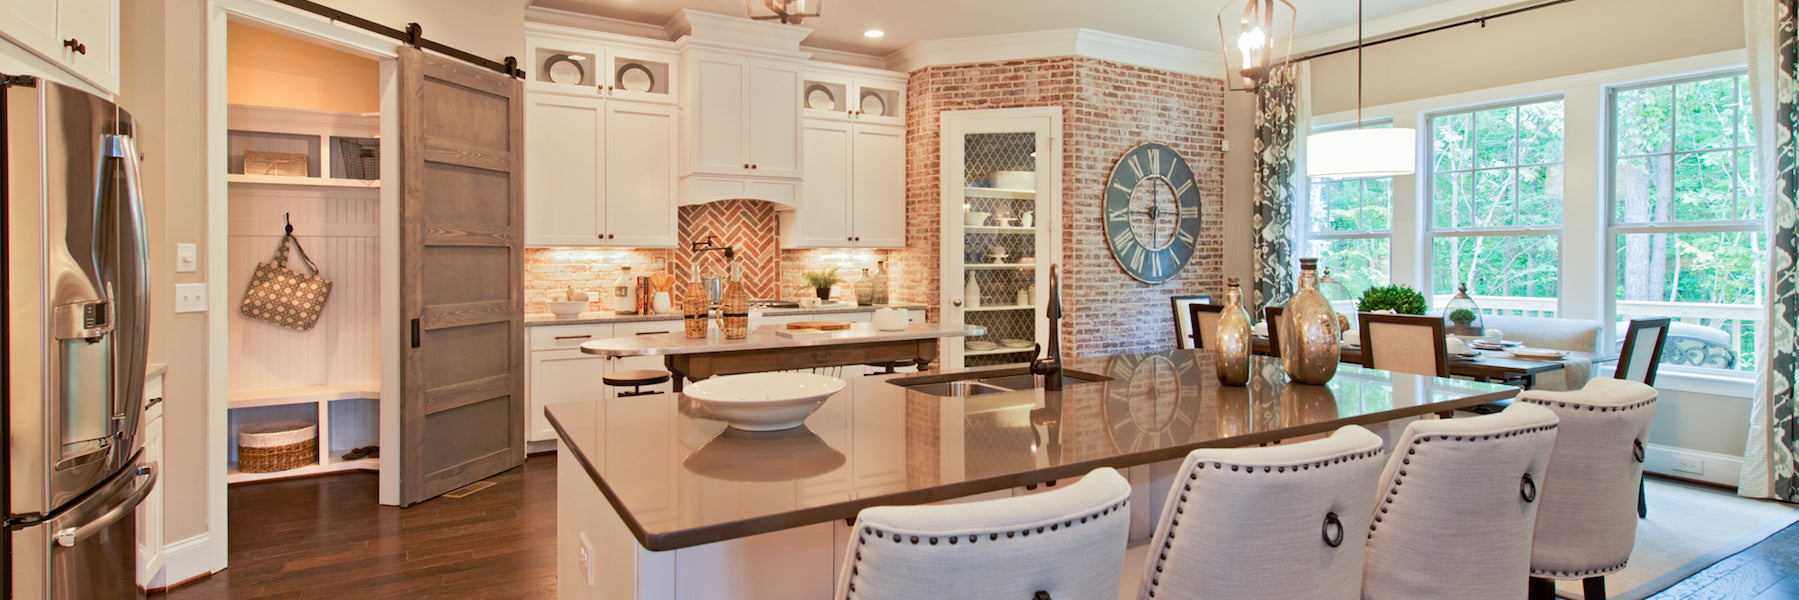 beautiful kitchen with countertops, cabinets, and brick accent walls